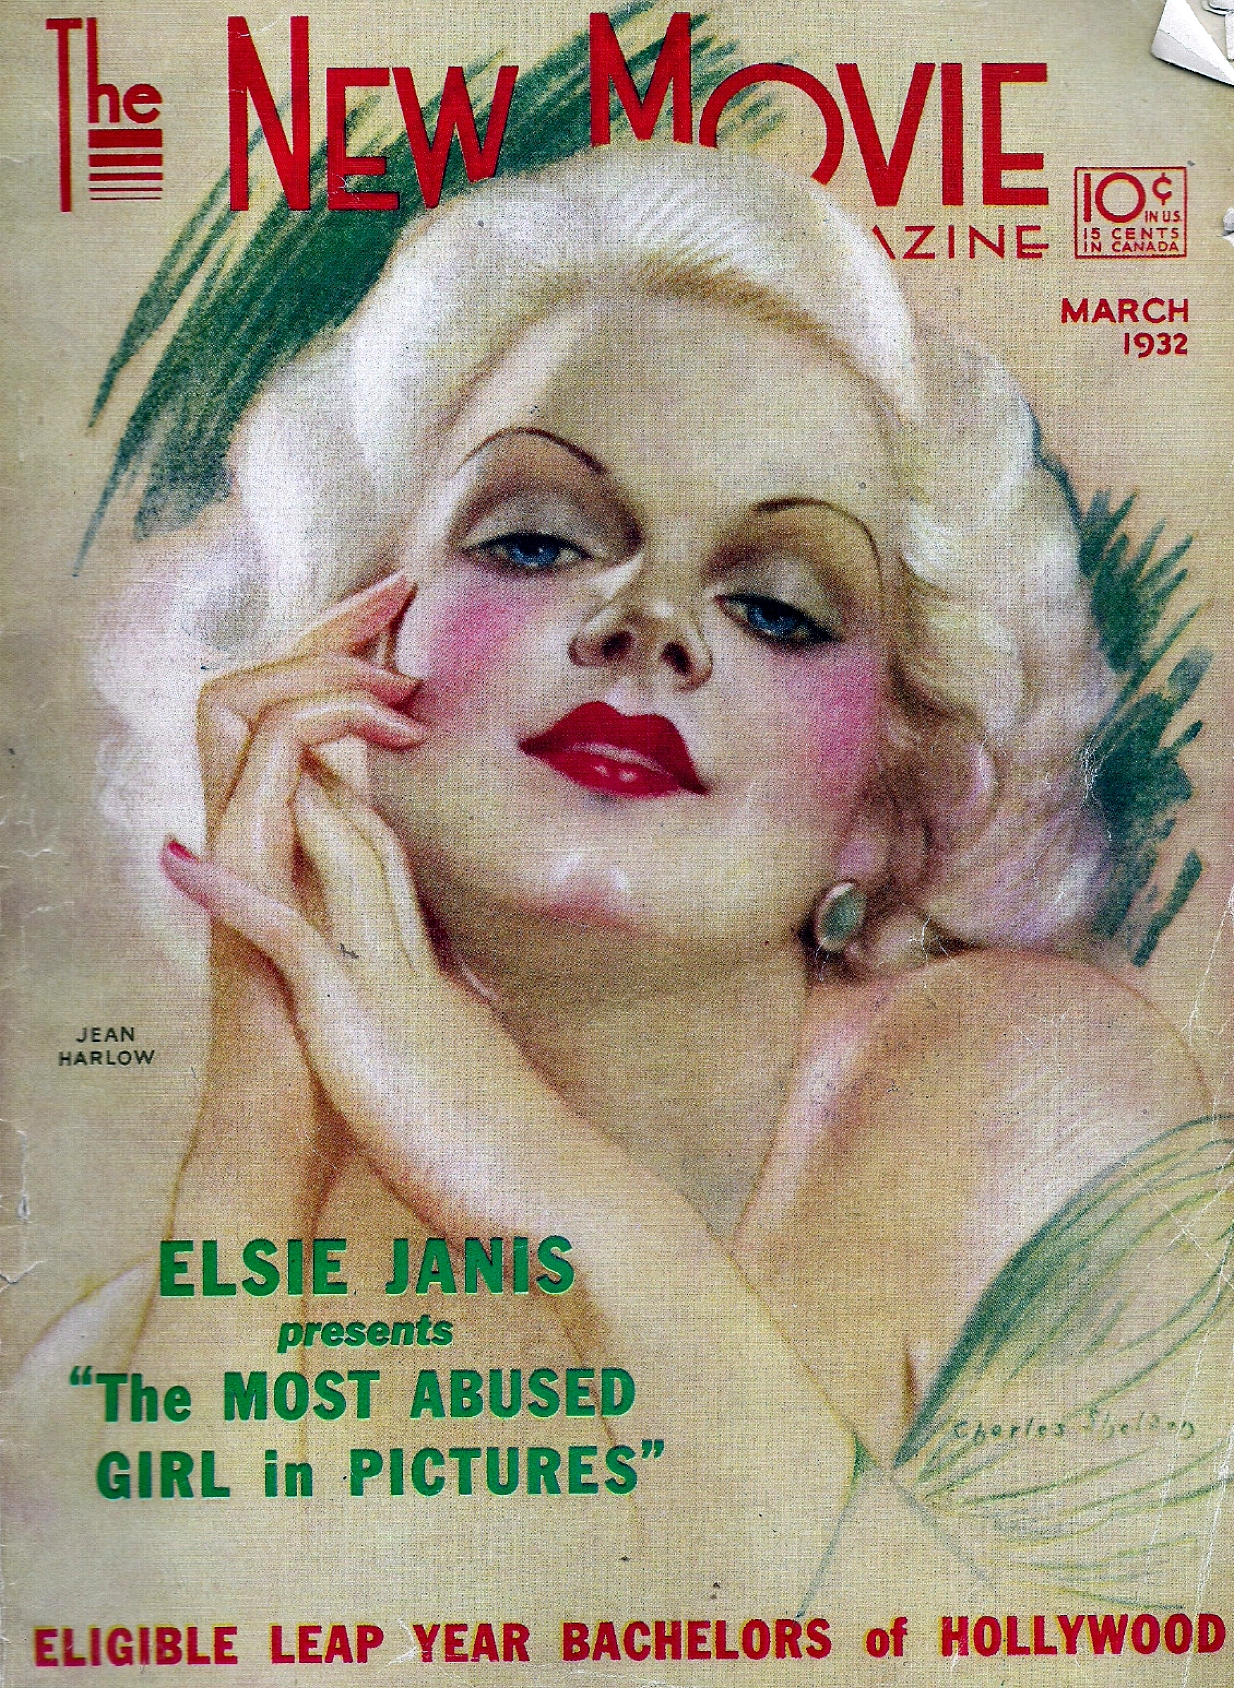 jean harlow the new movie magazine march 1932 cover large